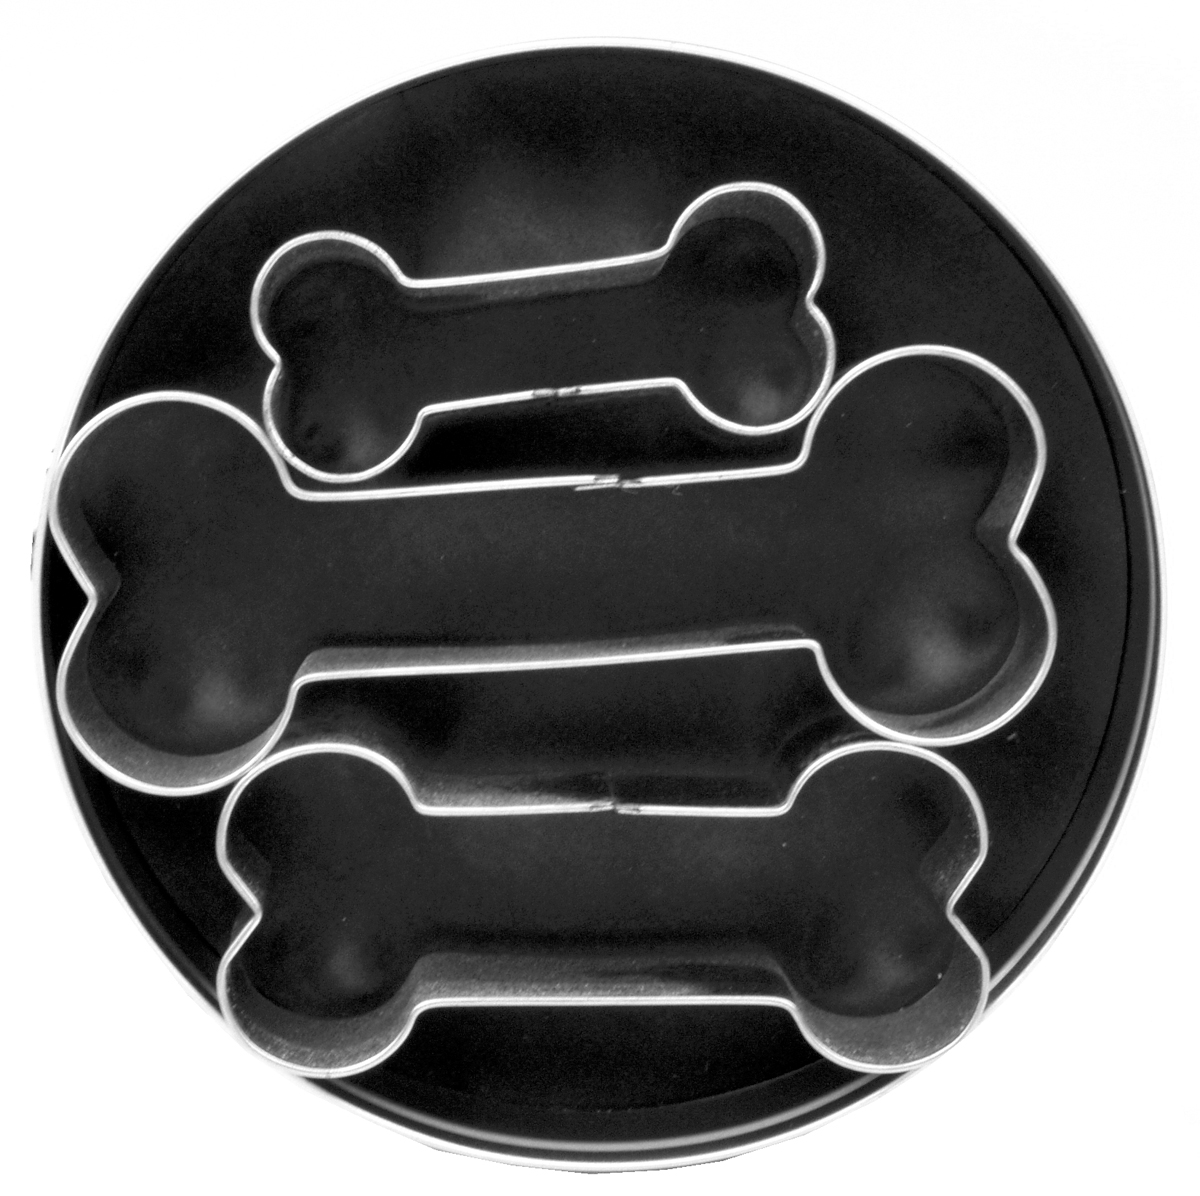 281098135528 further 130766155670 in addition Dog Bone Dogzila Cookie Cutter Puppy Pup also Happy Birthday Audrey Wood August 12 additionally Craghoppers Men S T Shirts. on medium dog bone cookie cutter